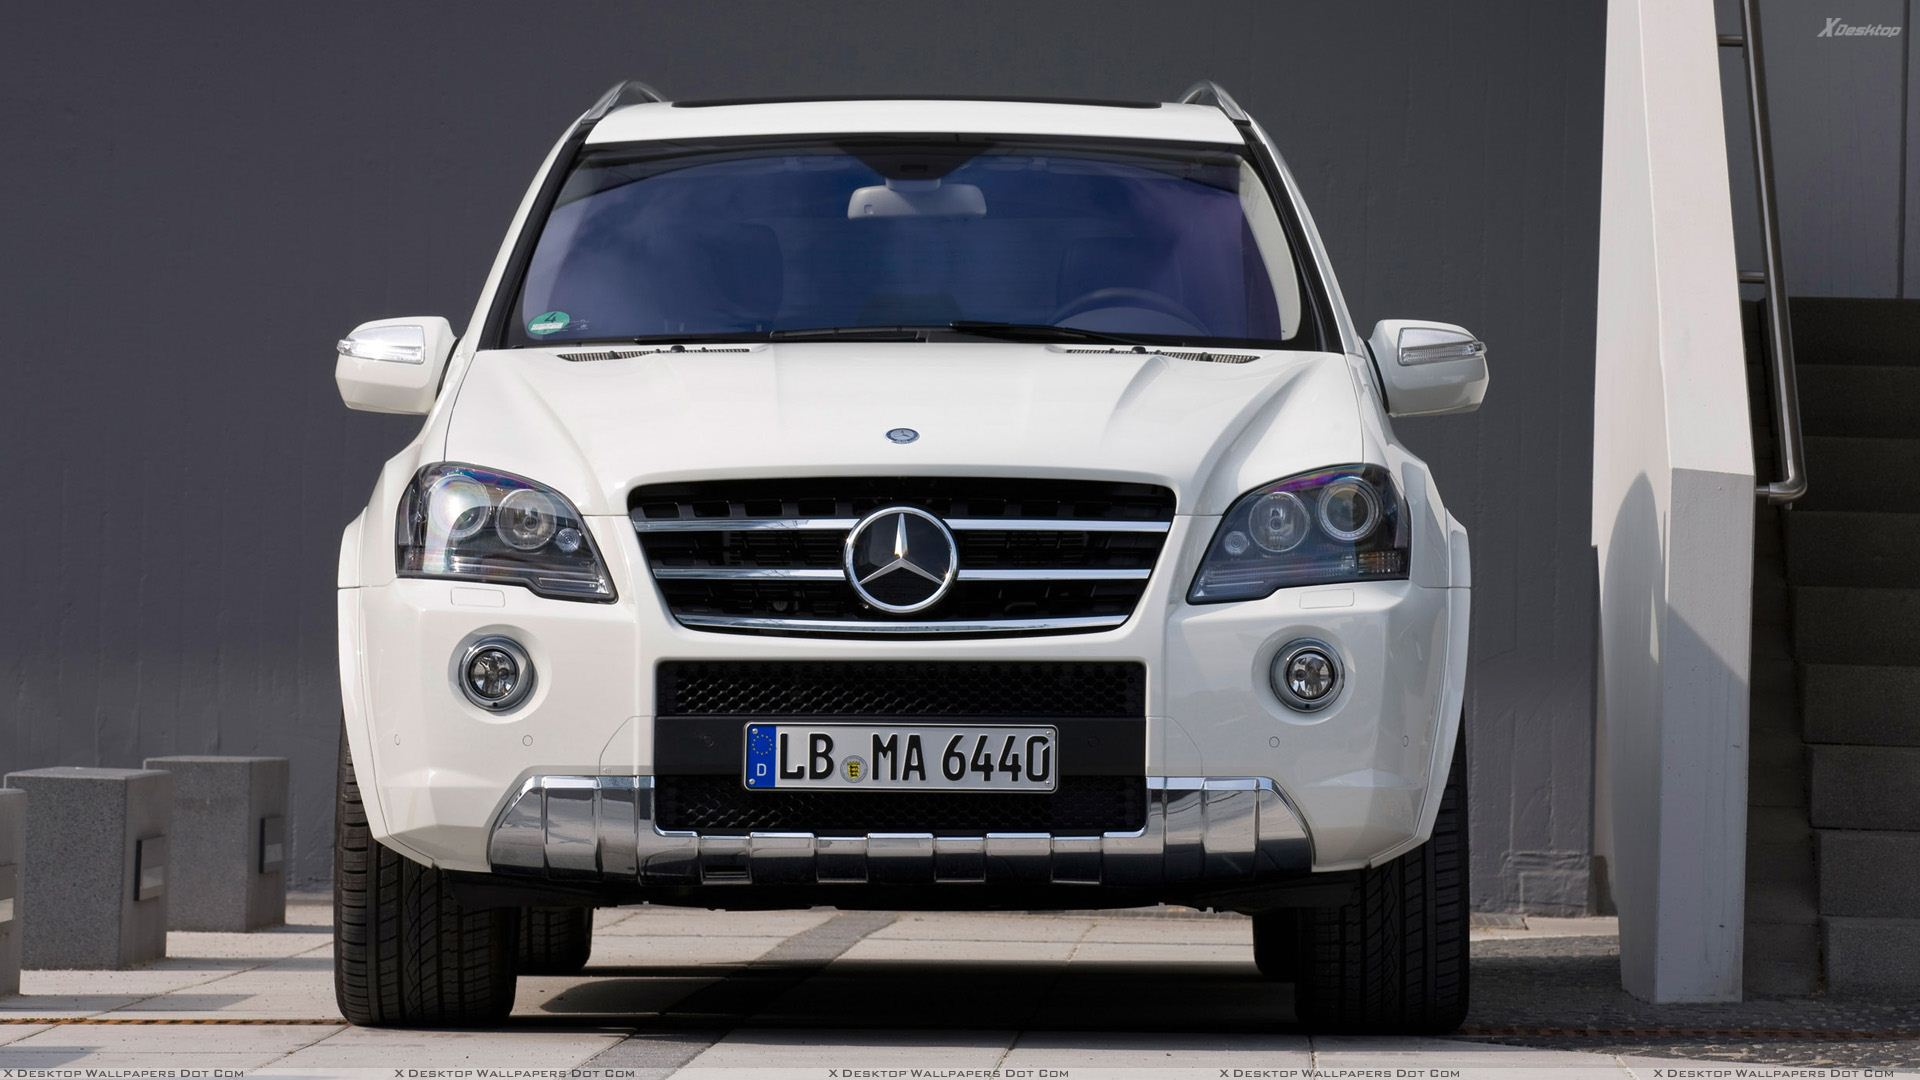 front pose of 2010 mercedes-benz ml 63 amg facelift in white wallpaper